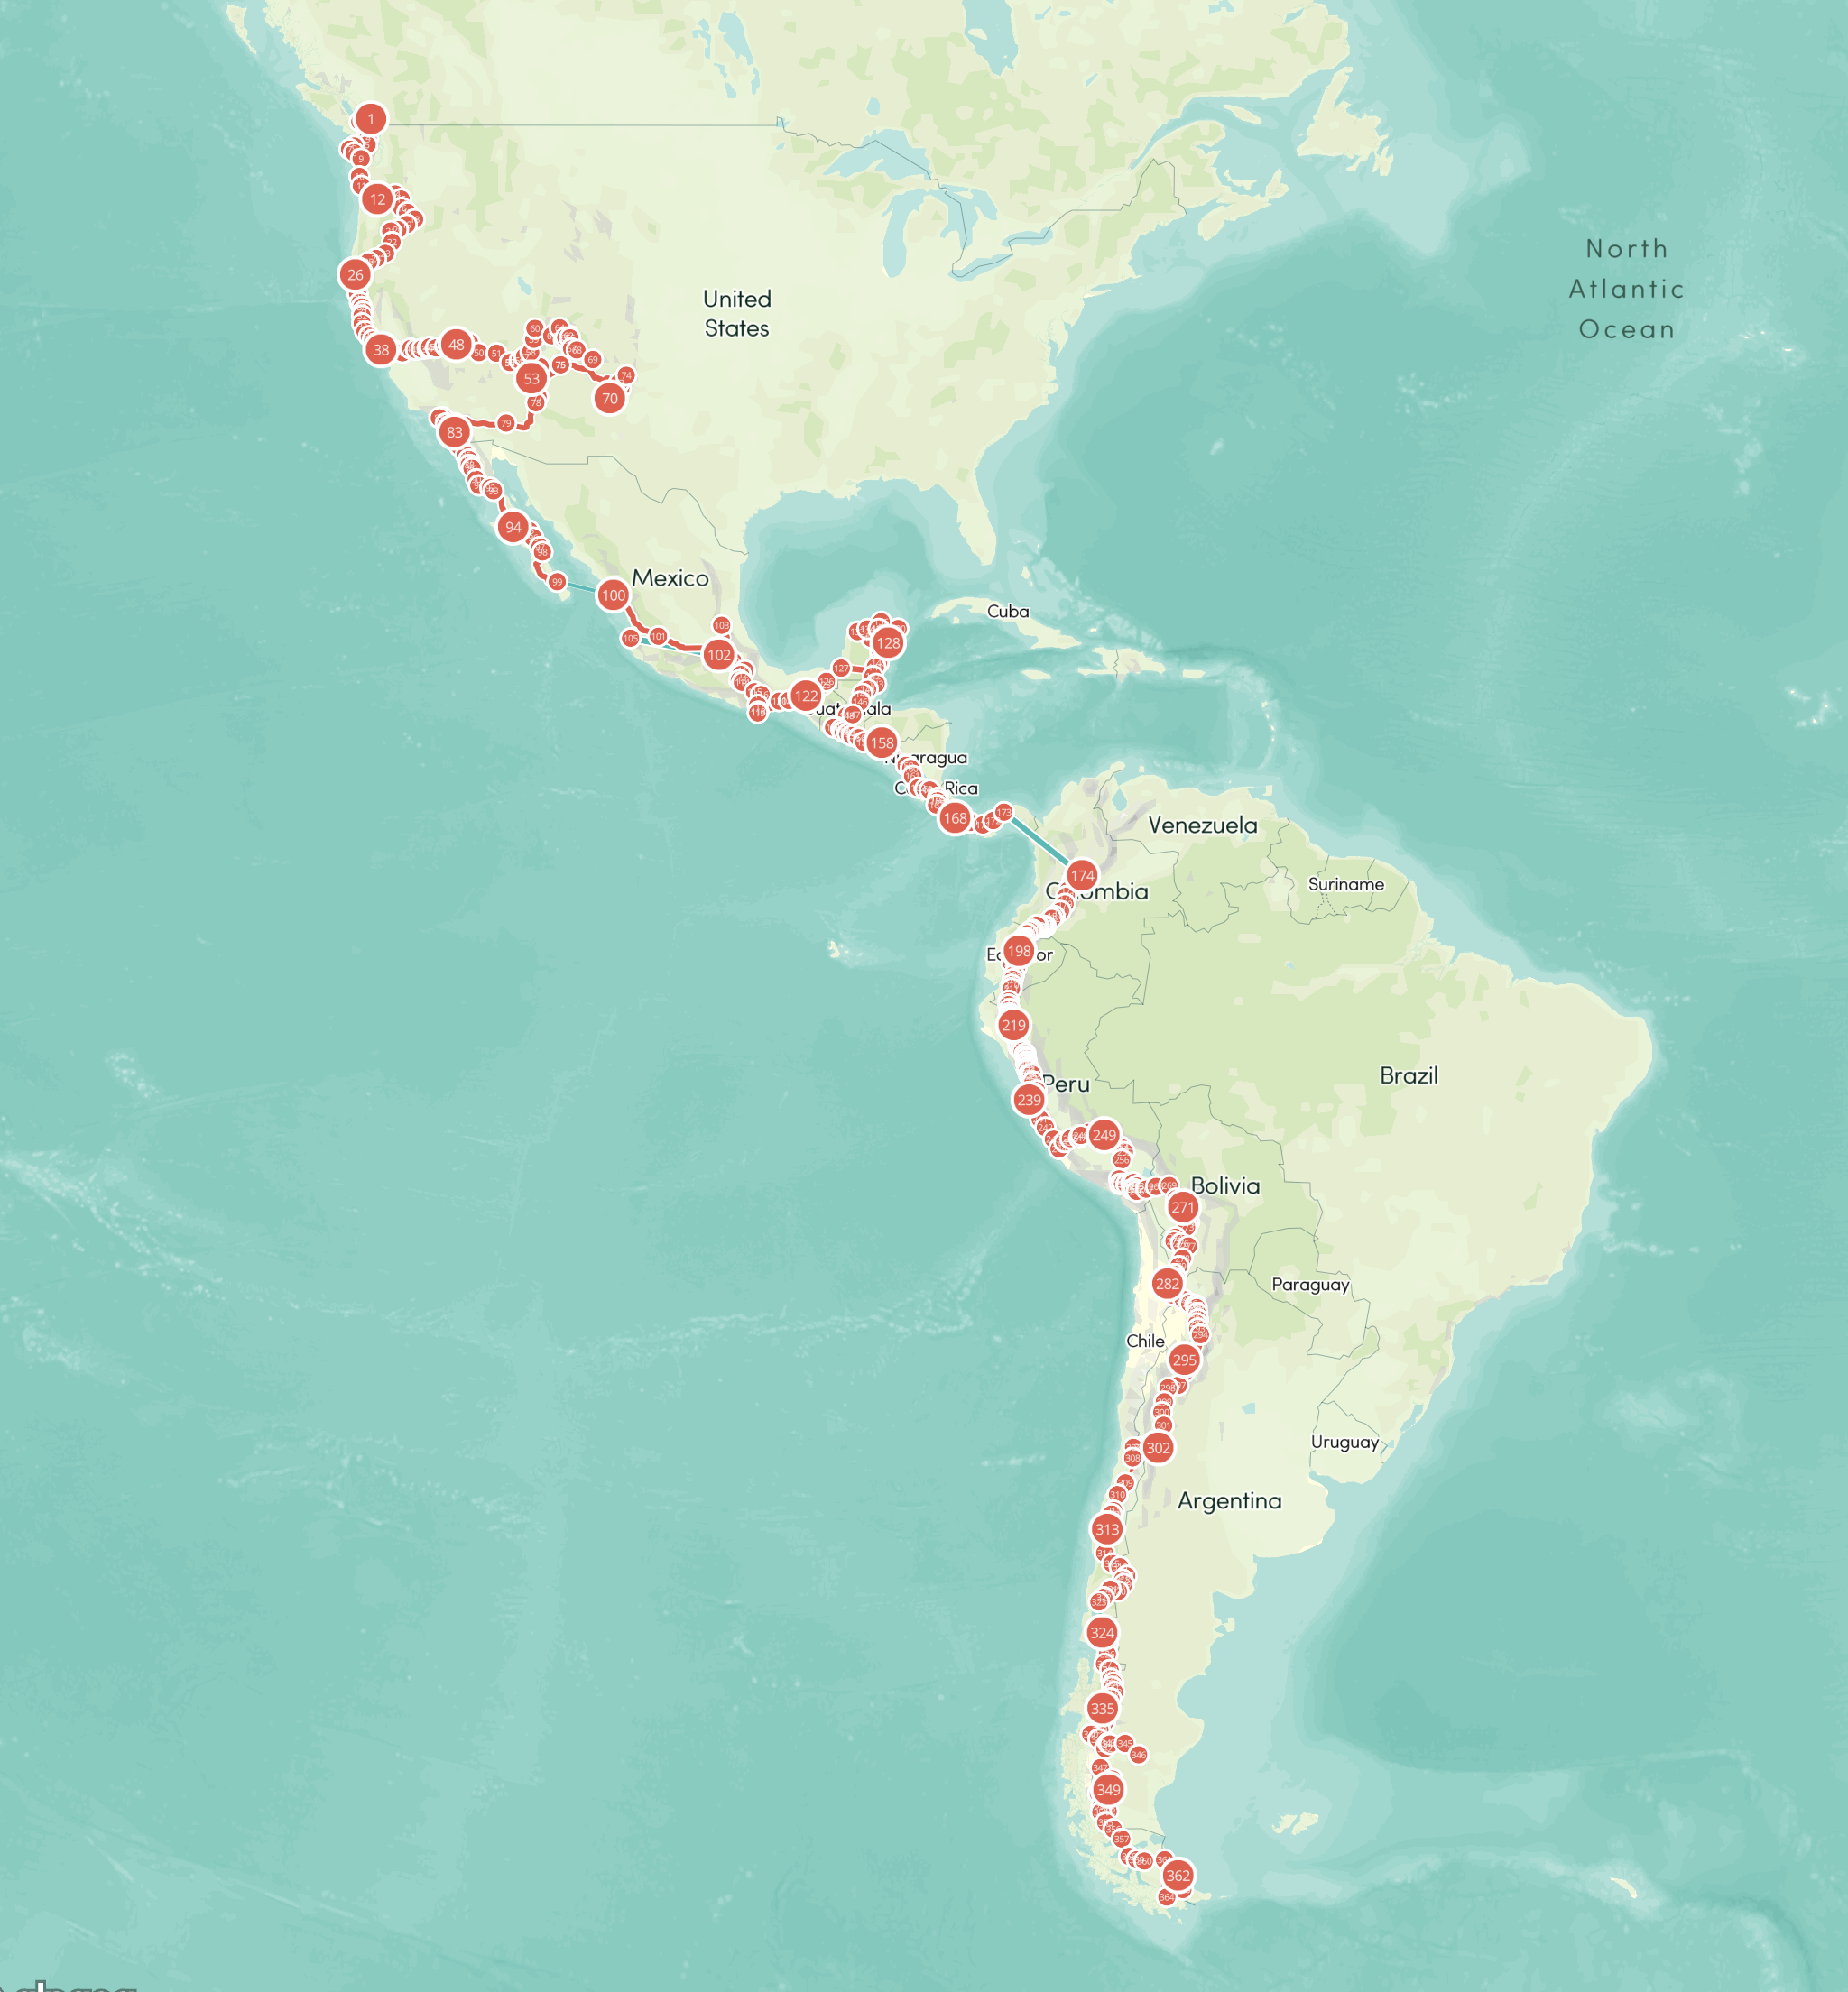 The complete journey from Vancouver, Canada to Ushuaia, Argentina. Every dot on the map is where I spend a night. Of the 816 days on the road I cycled 364 days. The total cycled distance is 19.991 km (this does not include any bus, car or ferry rides). The total elevation gain is 245.000 meter.